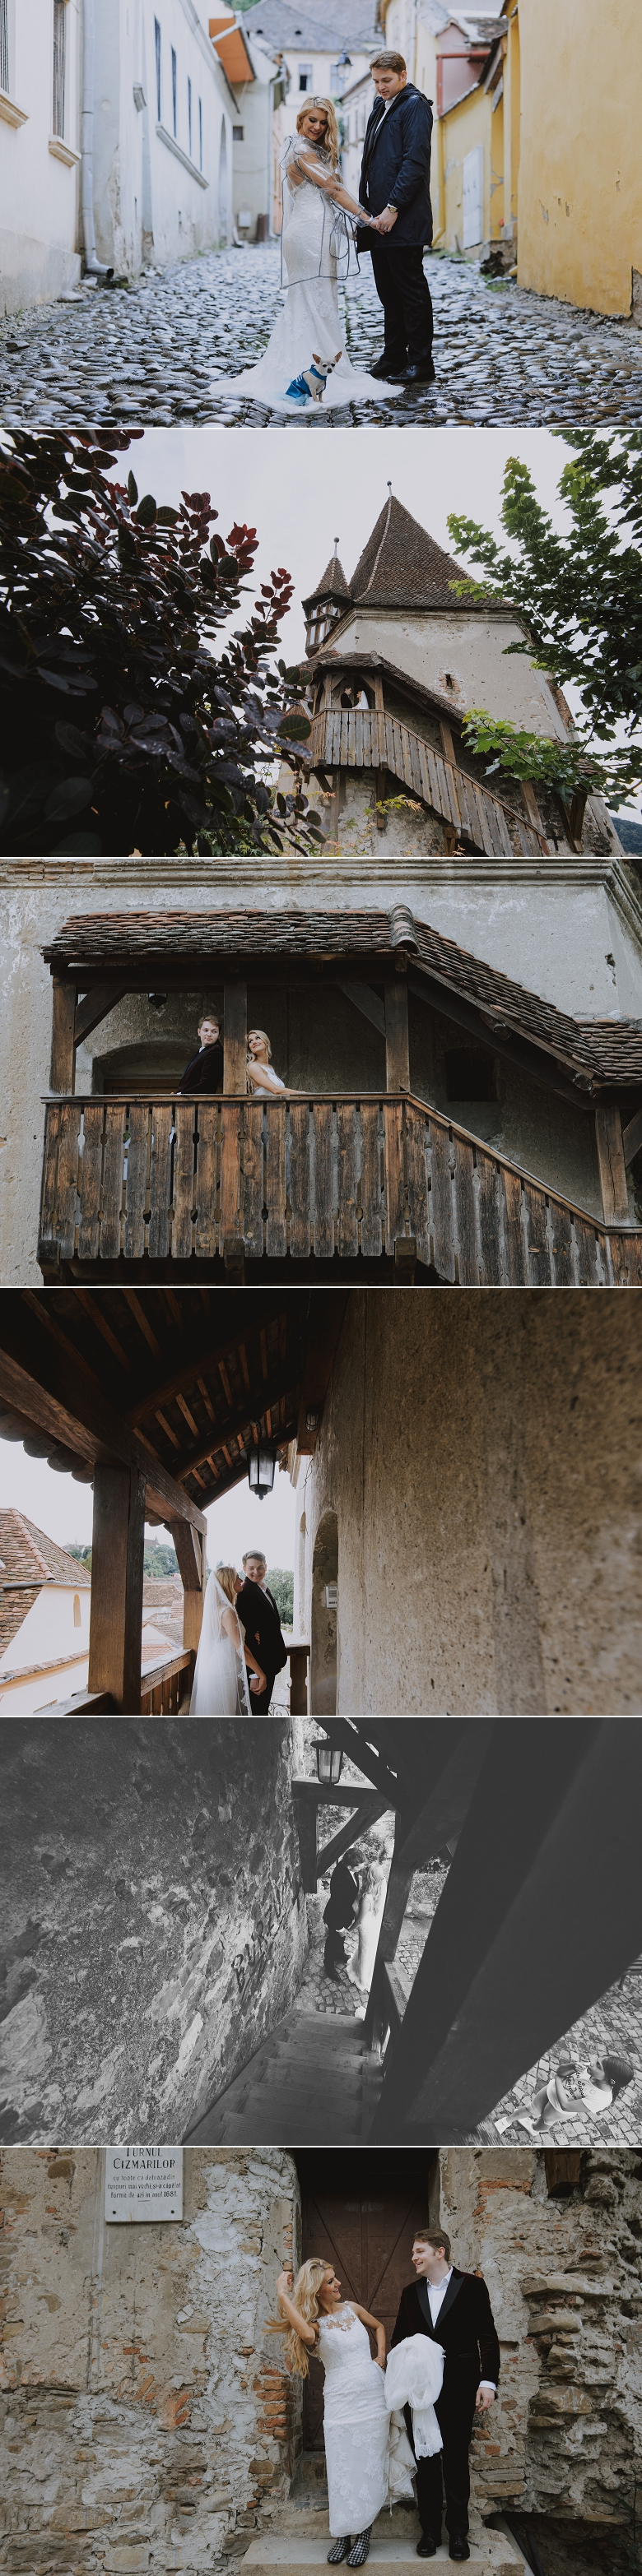 foto_video_nunta_sighisoara_after_wedding_fotograf_sighisoara-4